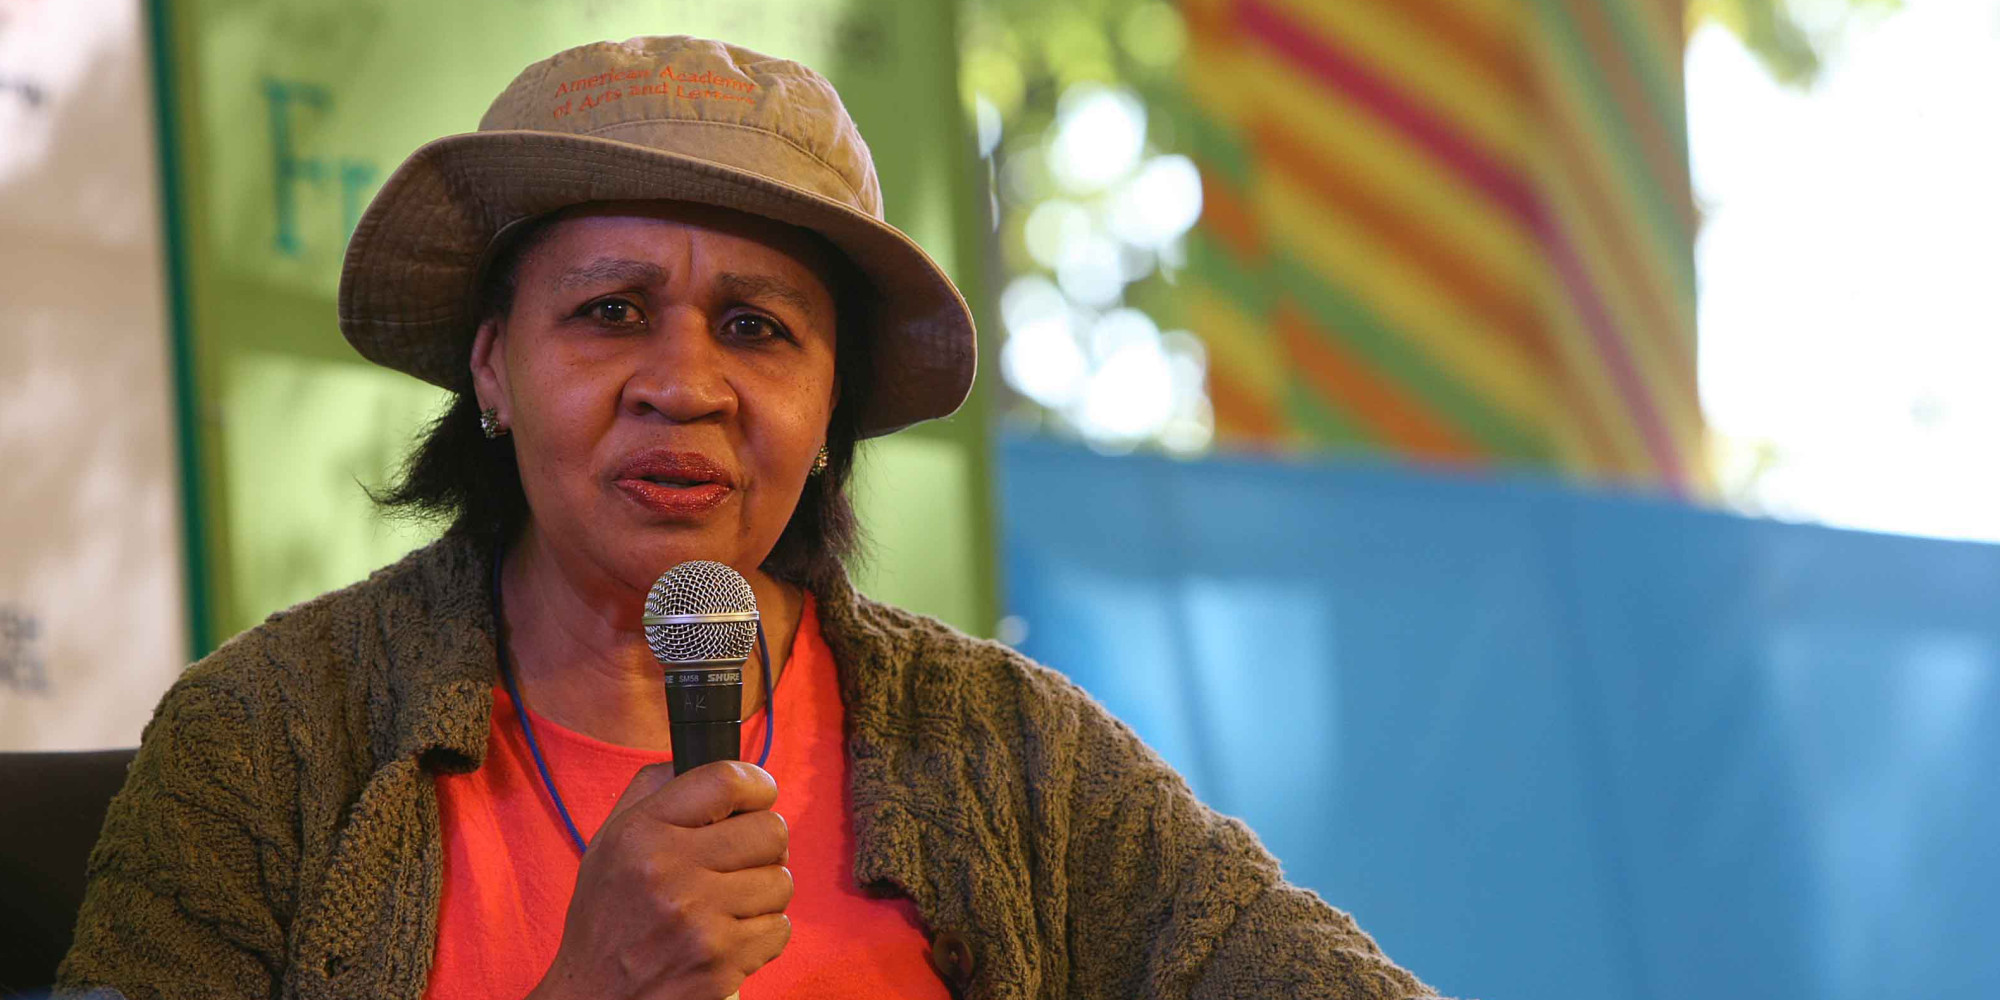 12 Reasons Why Writer Jamaica Kincaid Is A Total Badass